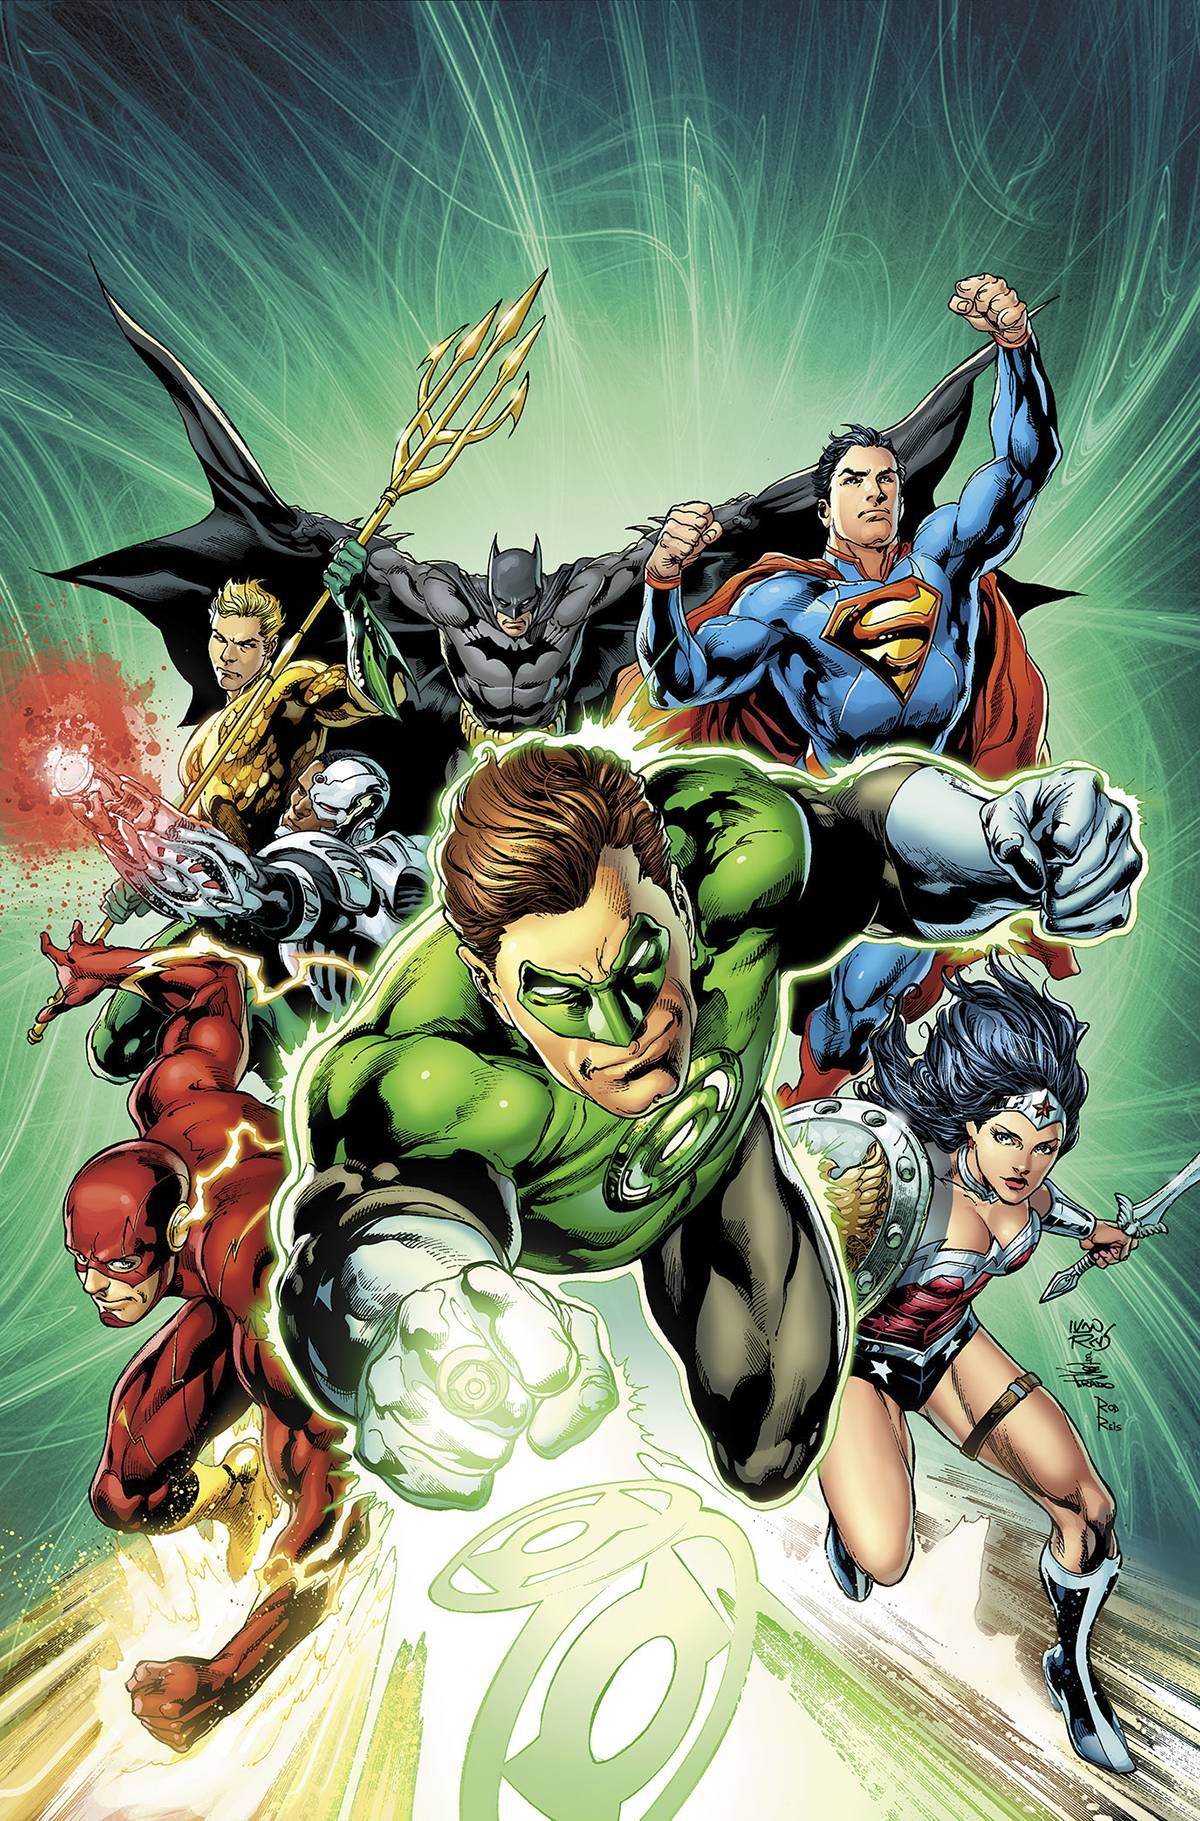 Justice League Vol 2 44 Textless Green Lantern 75th Anniversary Variant.jpg